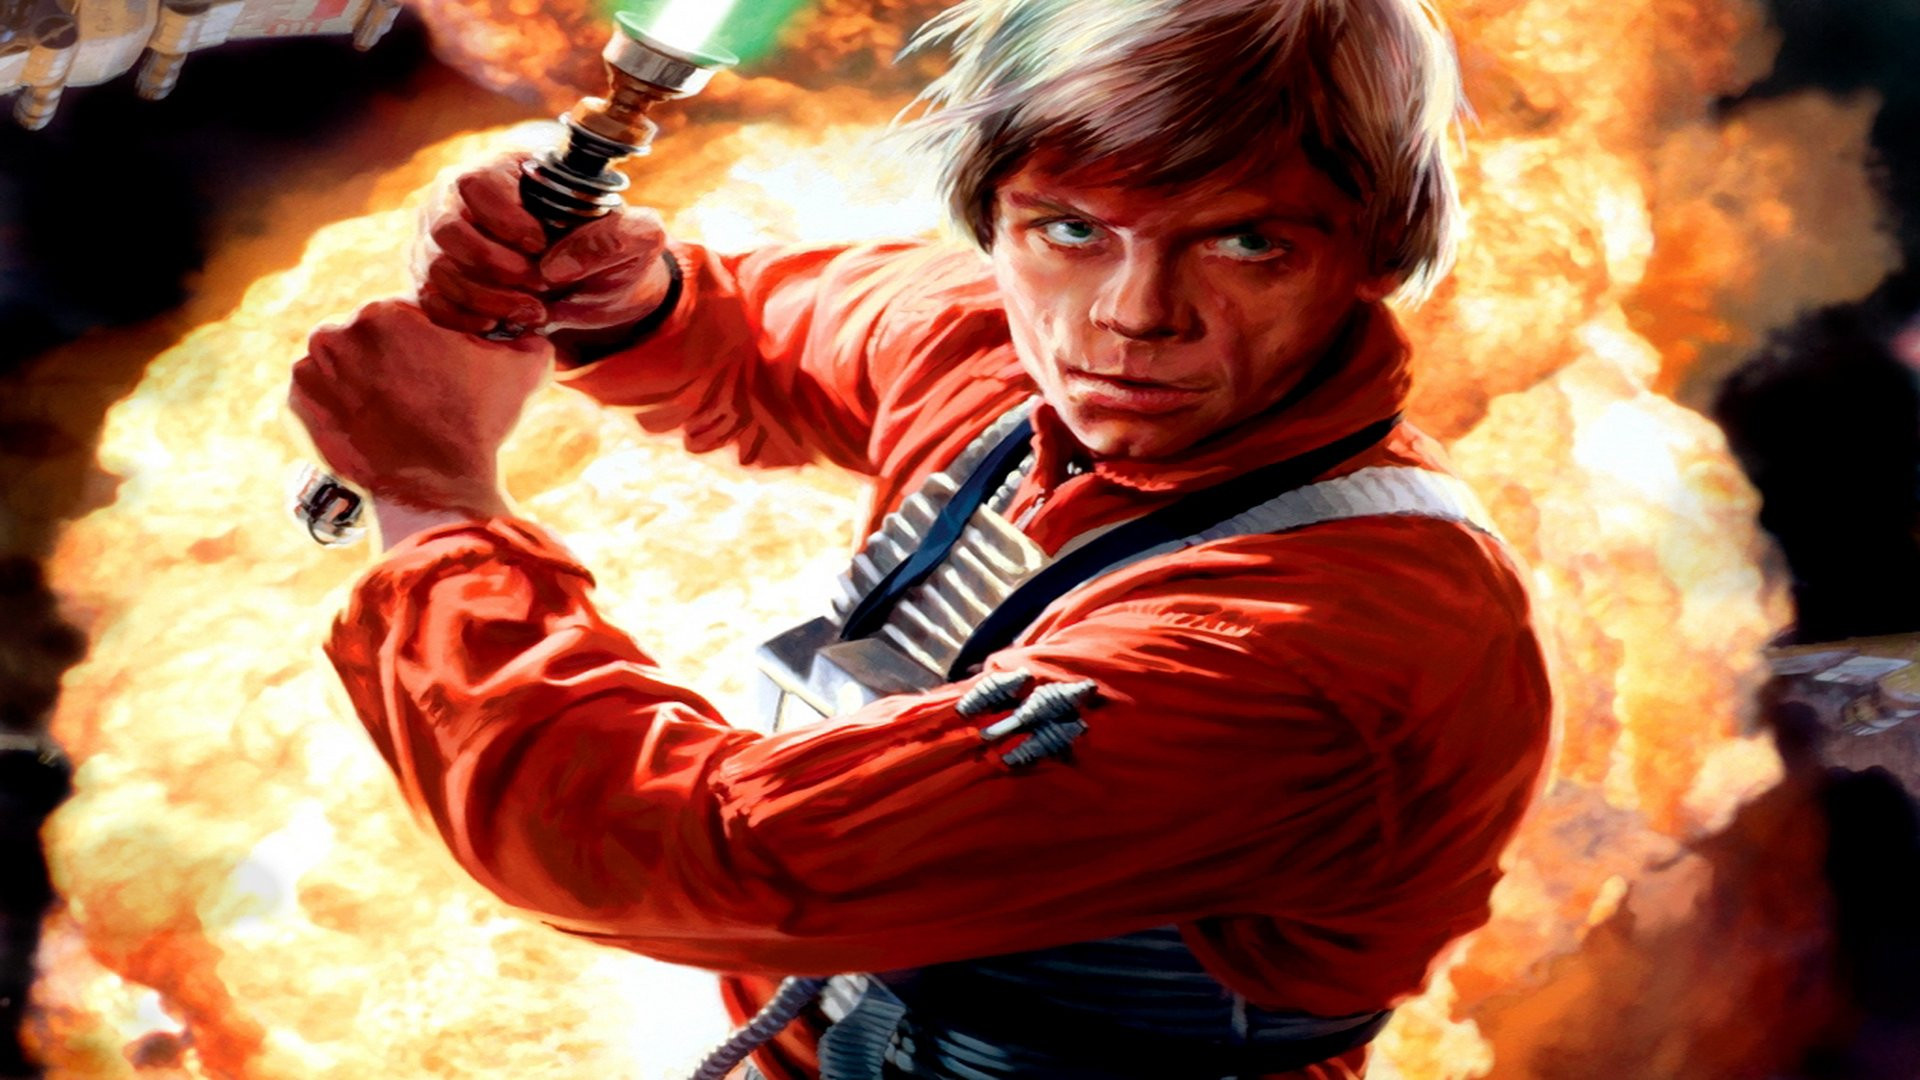 star wars luke skywalker wallpapers 15669 HD Desktop Wallpapers 1920x1080